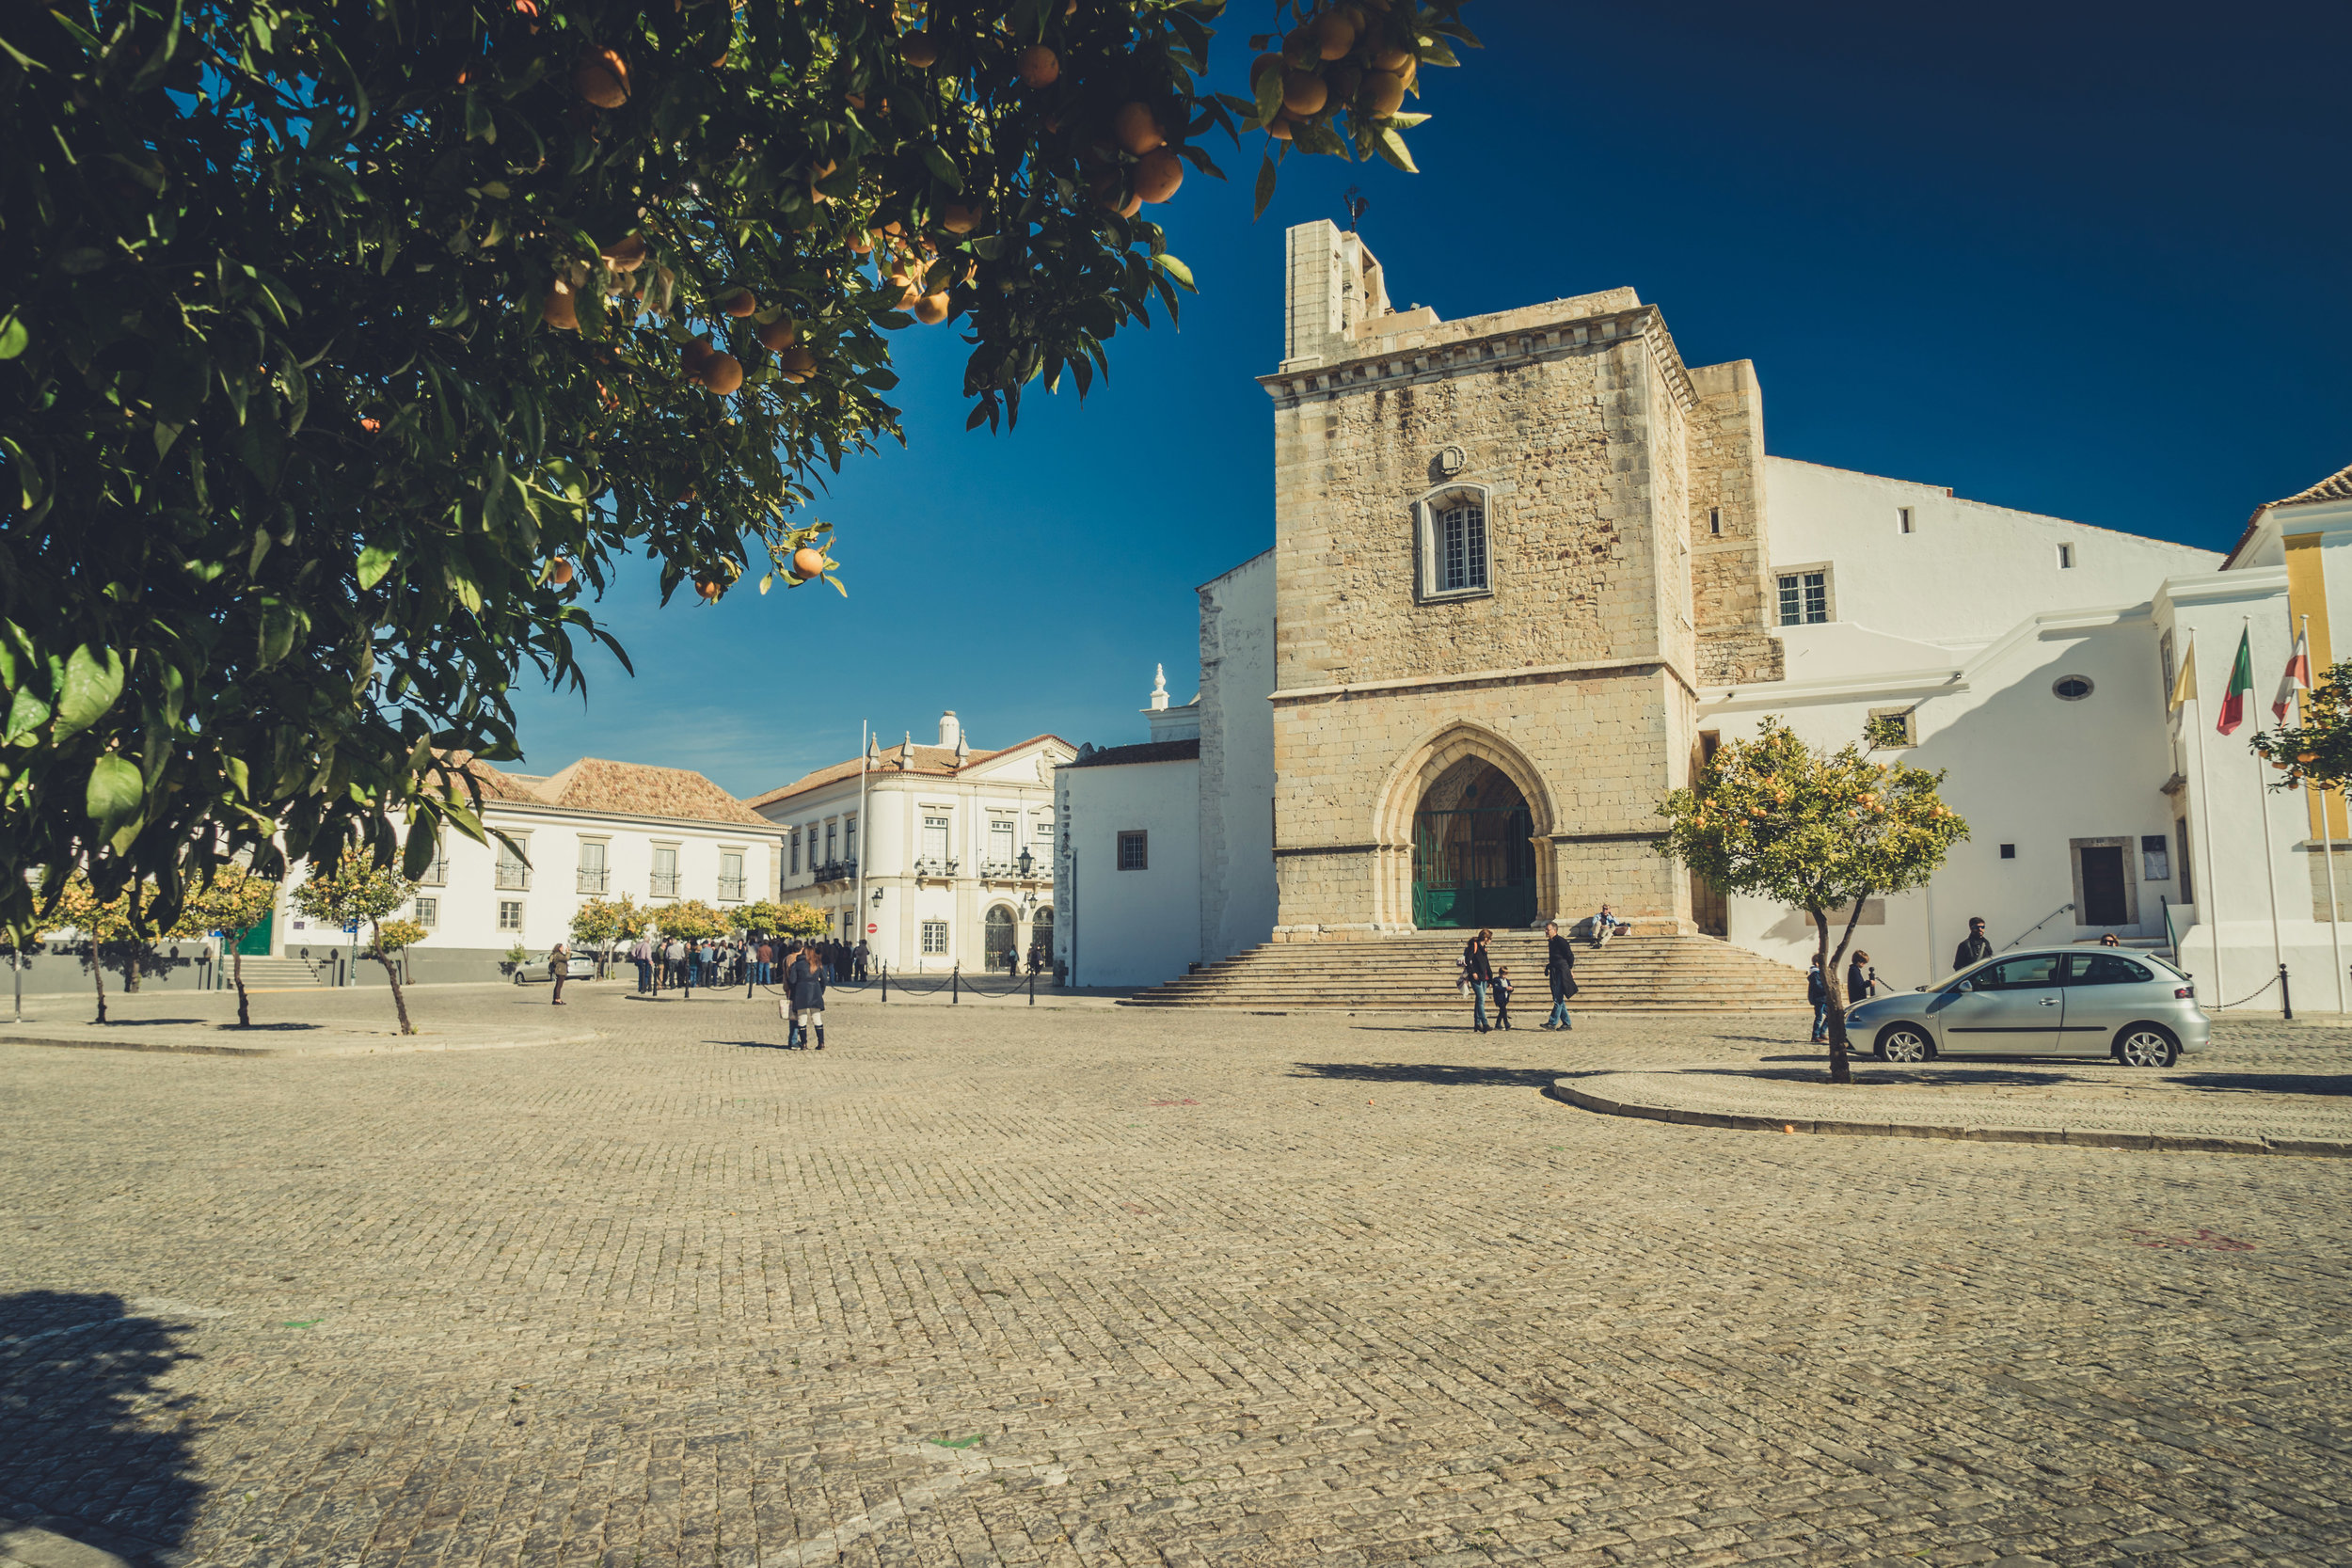 Cathedral of Faro. faro in the algarve. old town faro.jpg